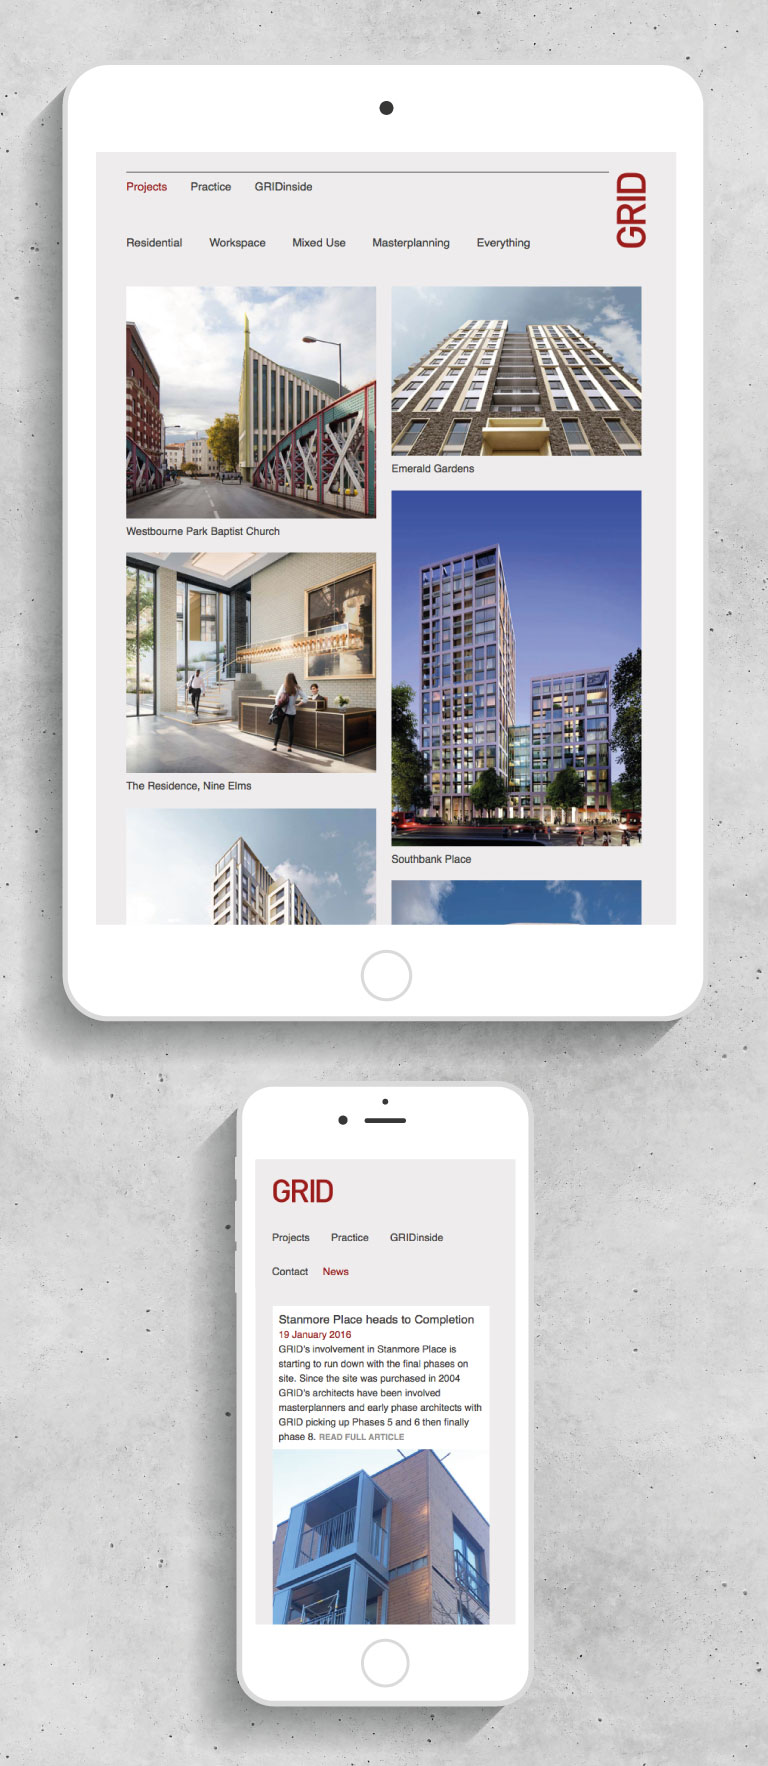 The GRID Architects website on an iPad and iPhone - mobile